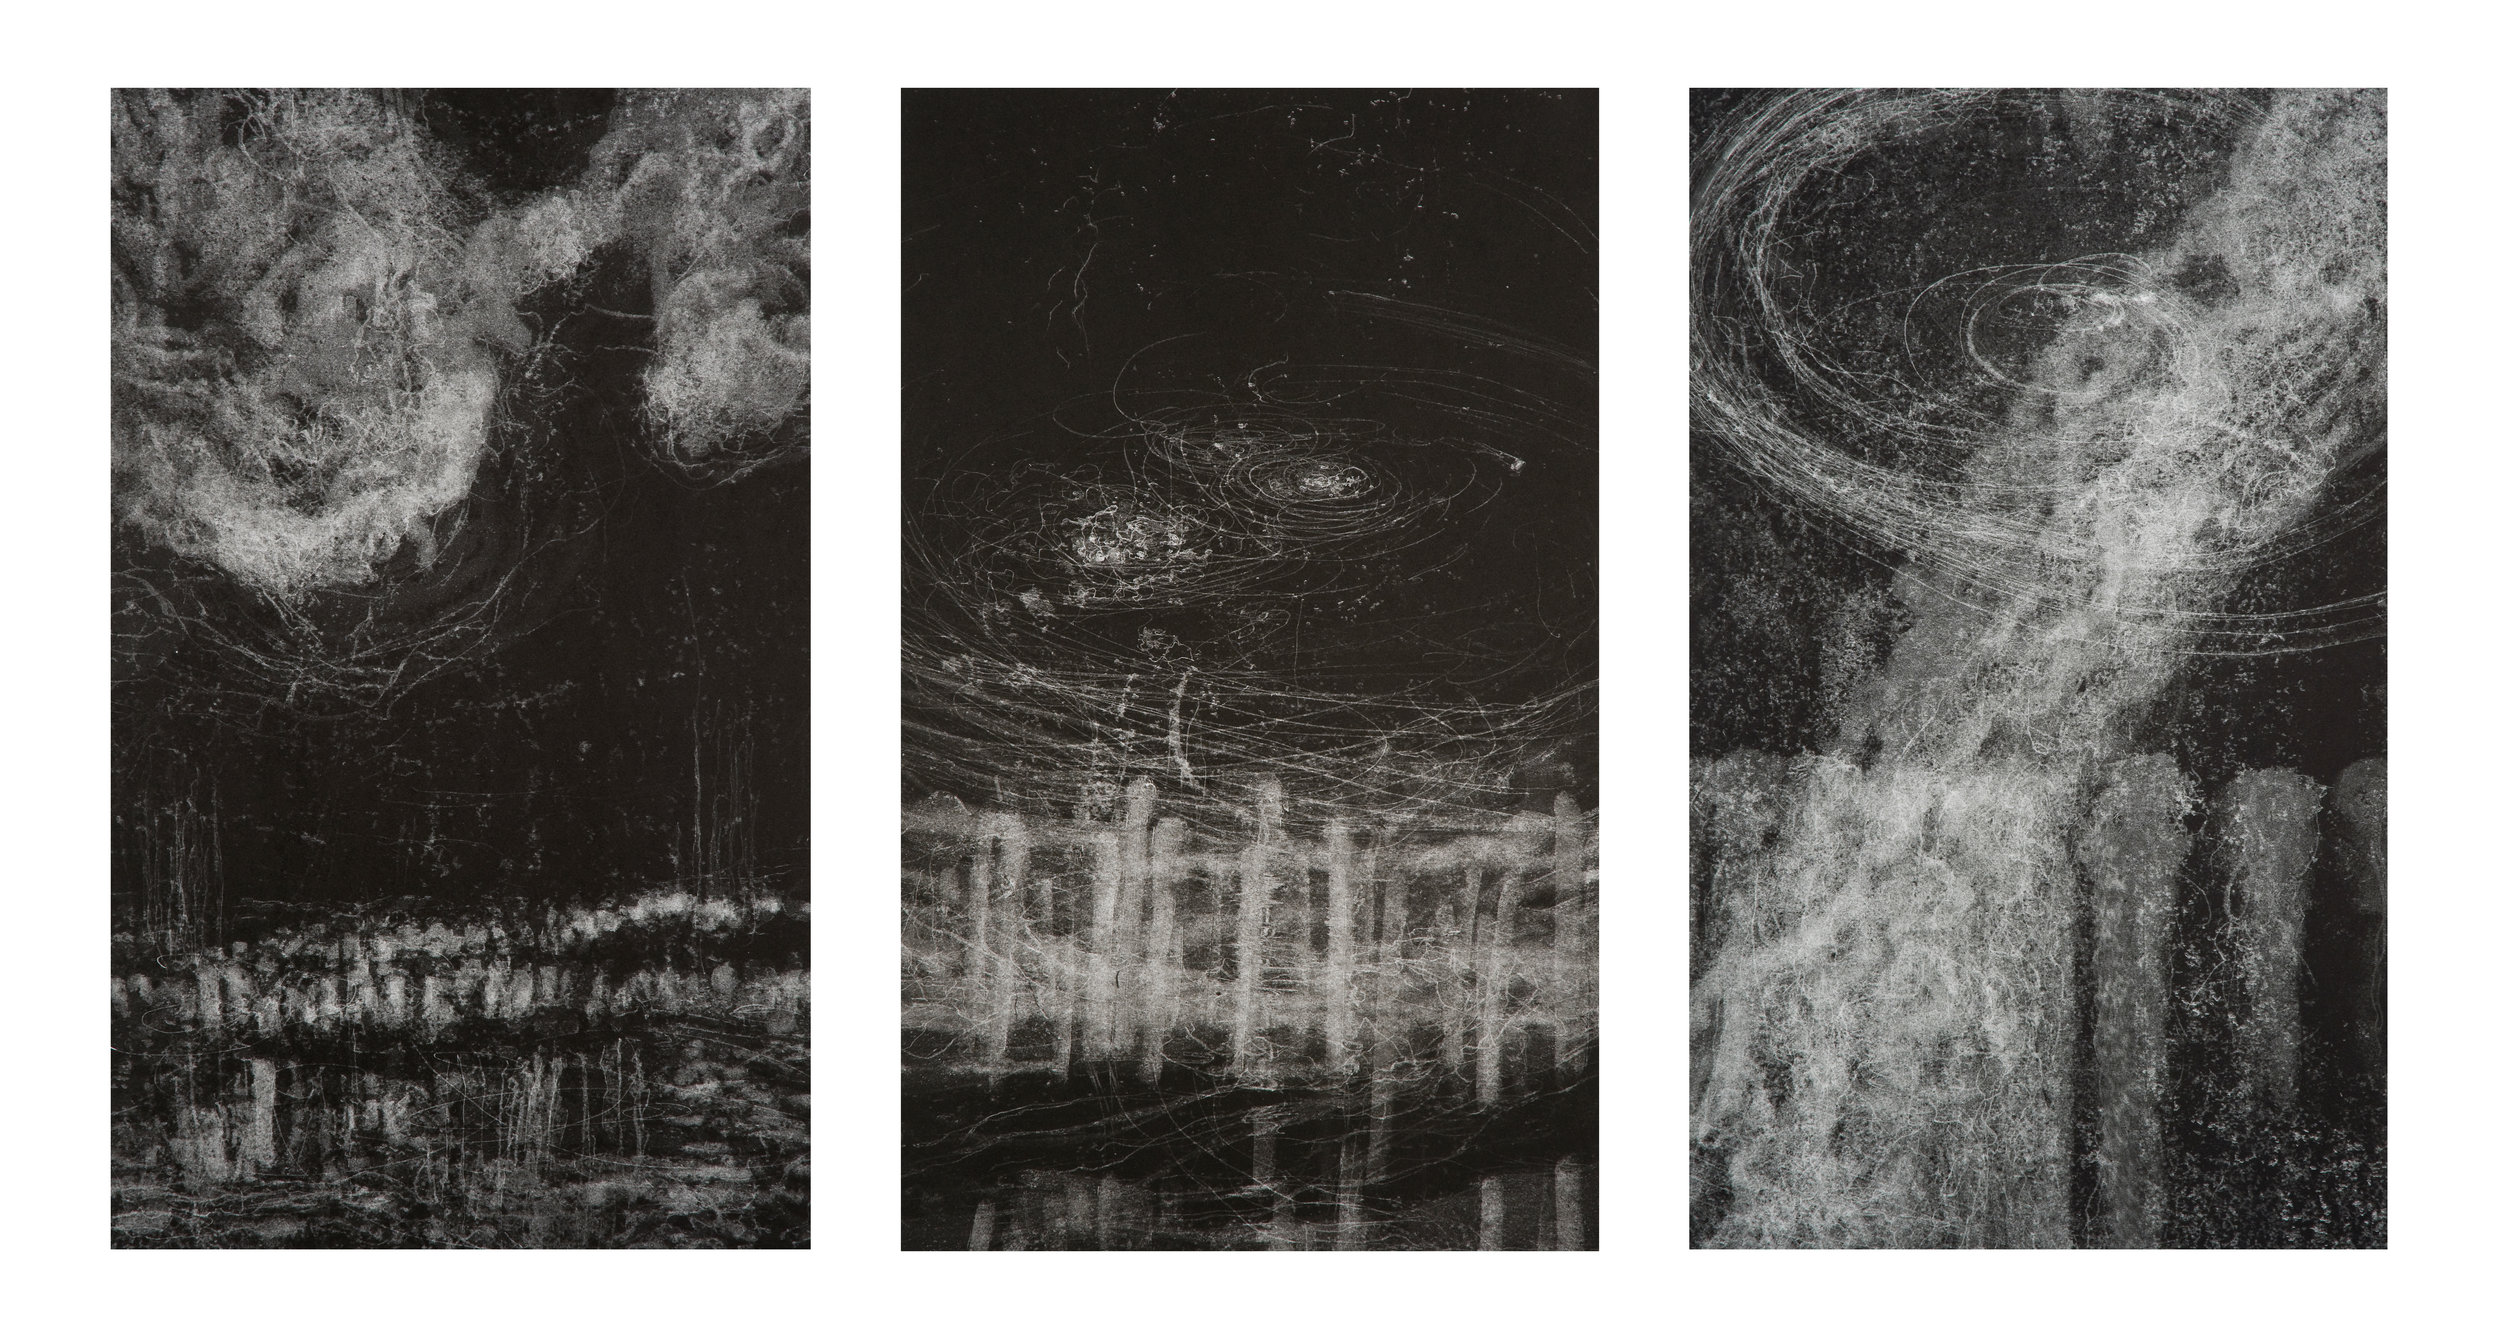 Hilda Shen, Illumined Triptych, 2010. Set of 3 unique monotypes, 15 x 25 inches each, not including frame, ©Hilda Shen, courtesy of Fou Gallery